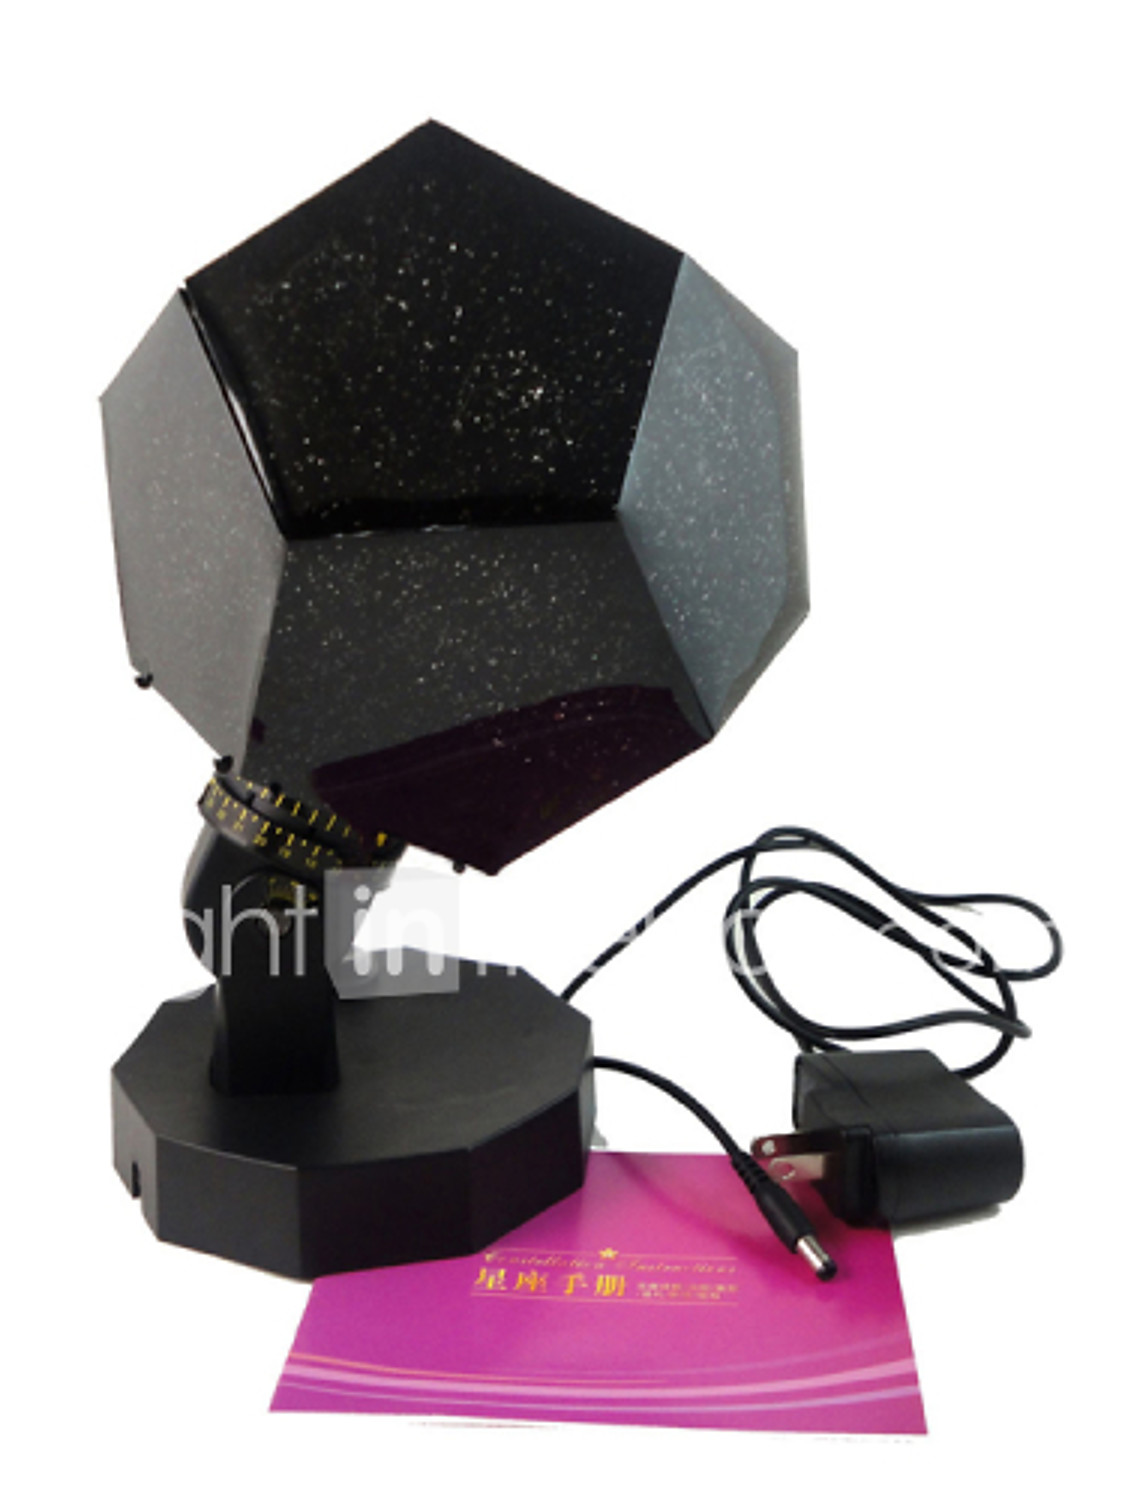 Four seasons star projector lamp - Photo By Supplier